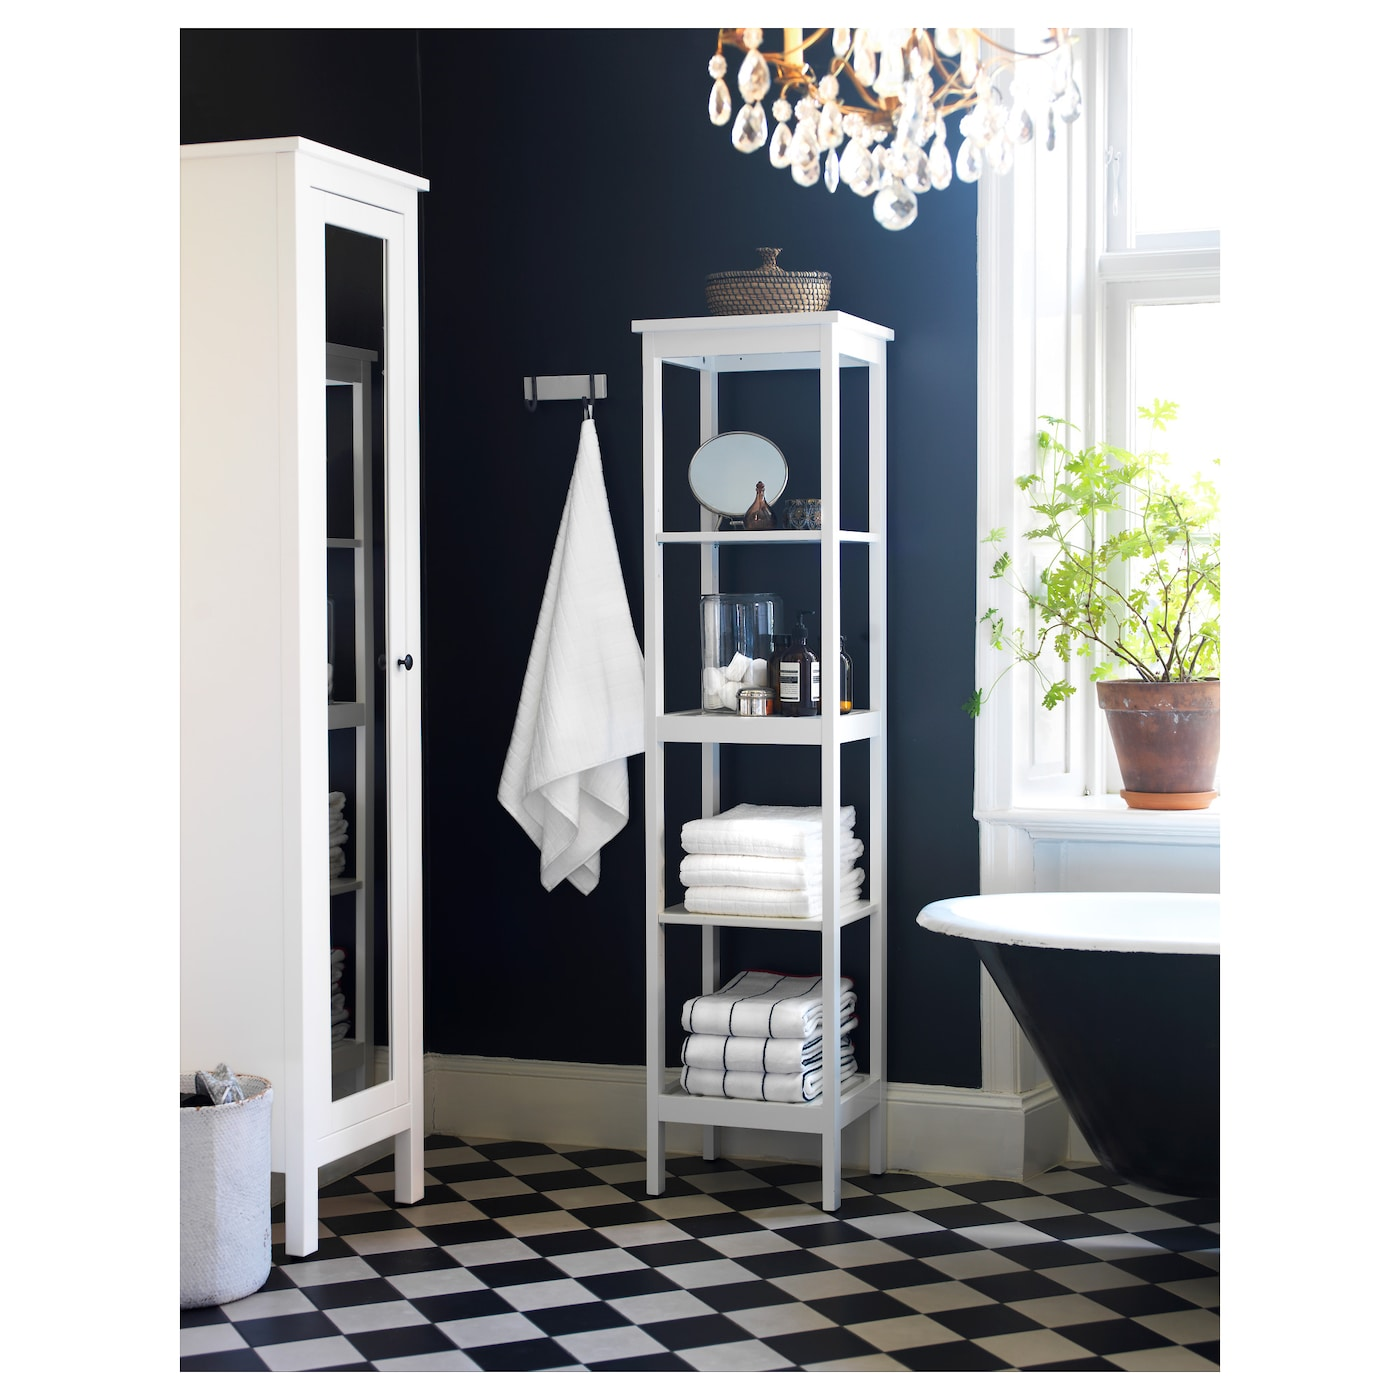 Shelving units for bathrooms - Ikea Hemnes Shelving Unit The Open Shelves Give An Easy Overview And Easy Reach